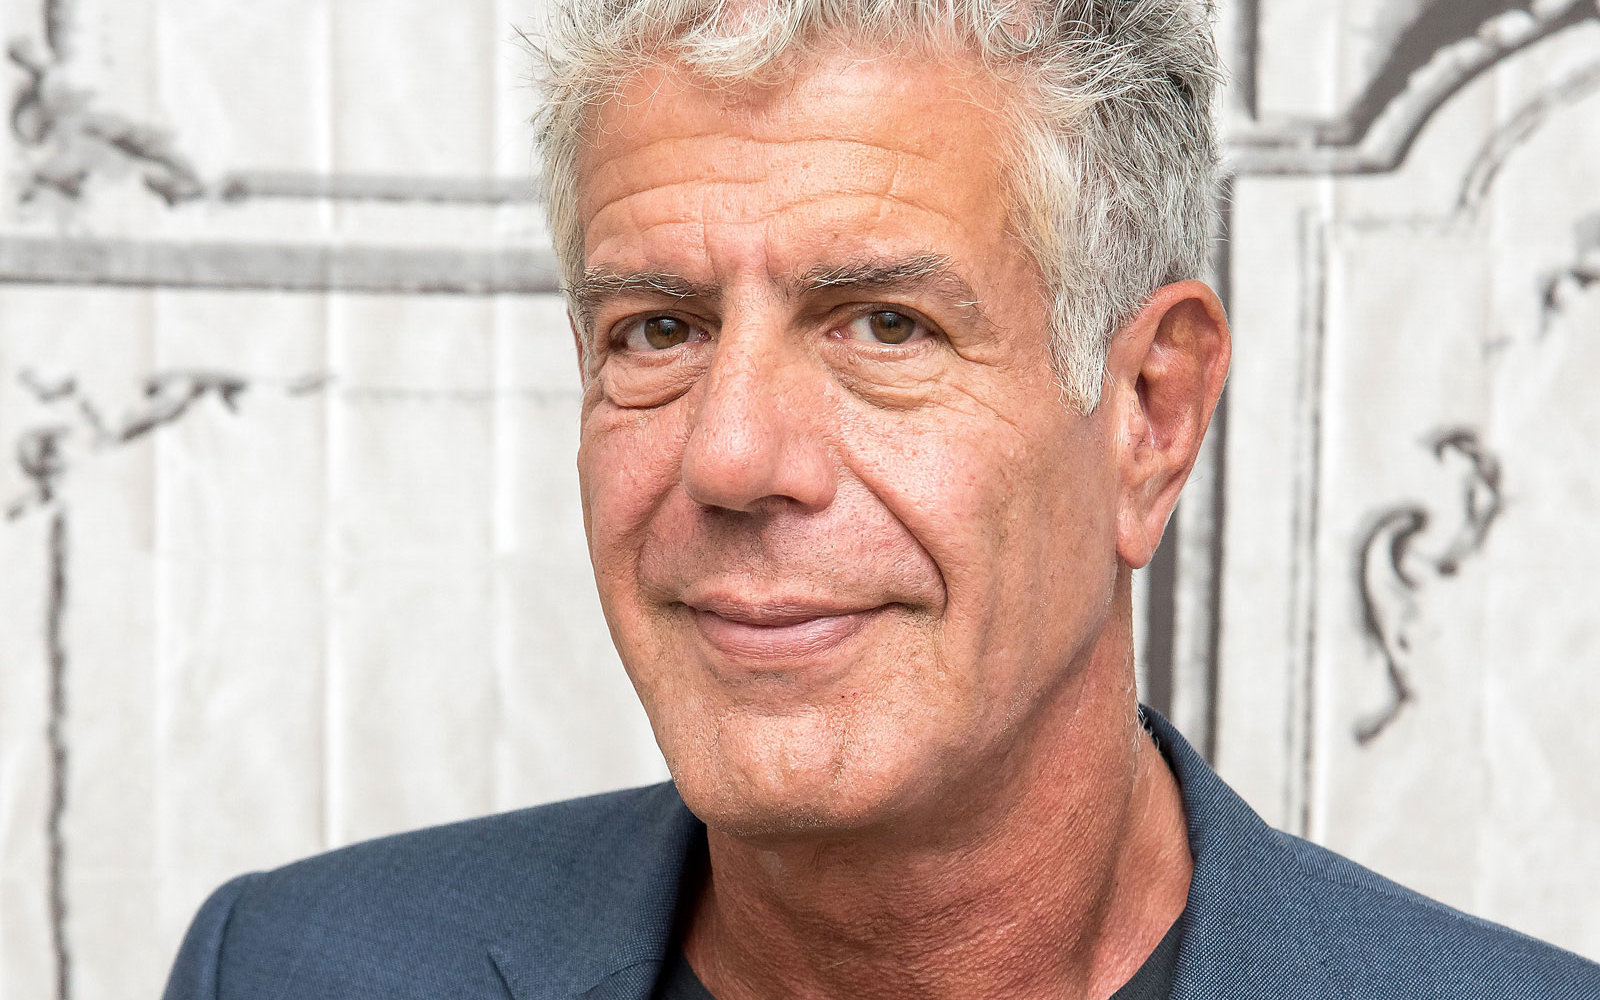 Anthony Bourdain's Custom Knife and Other Belongings Are Going up for Auction — and Proceeds Will Allow Future Chefs to Study Around the World